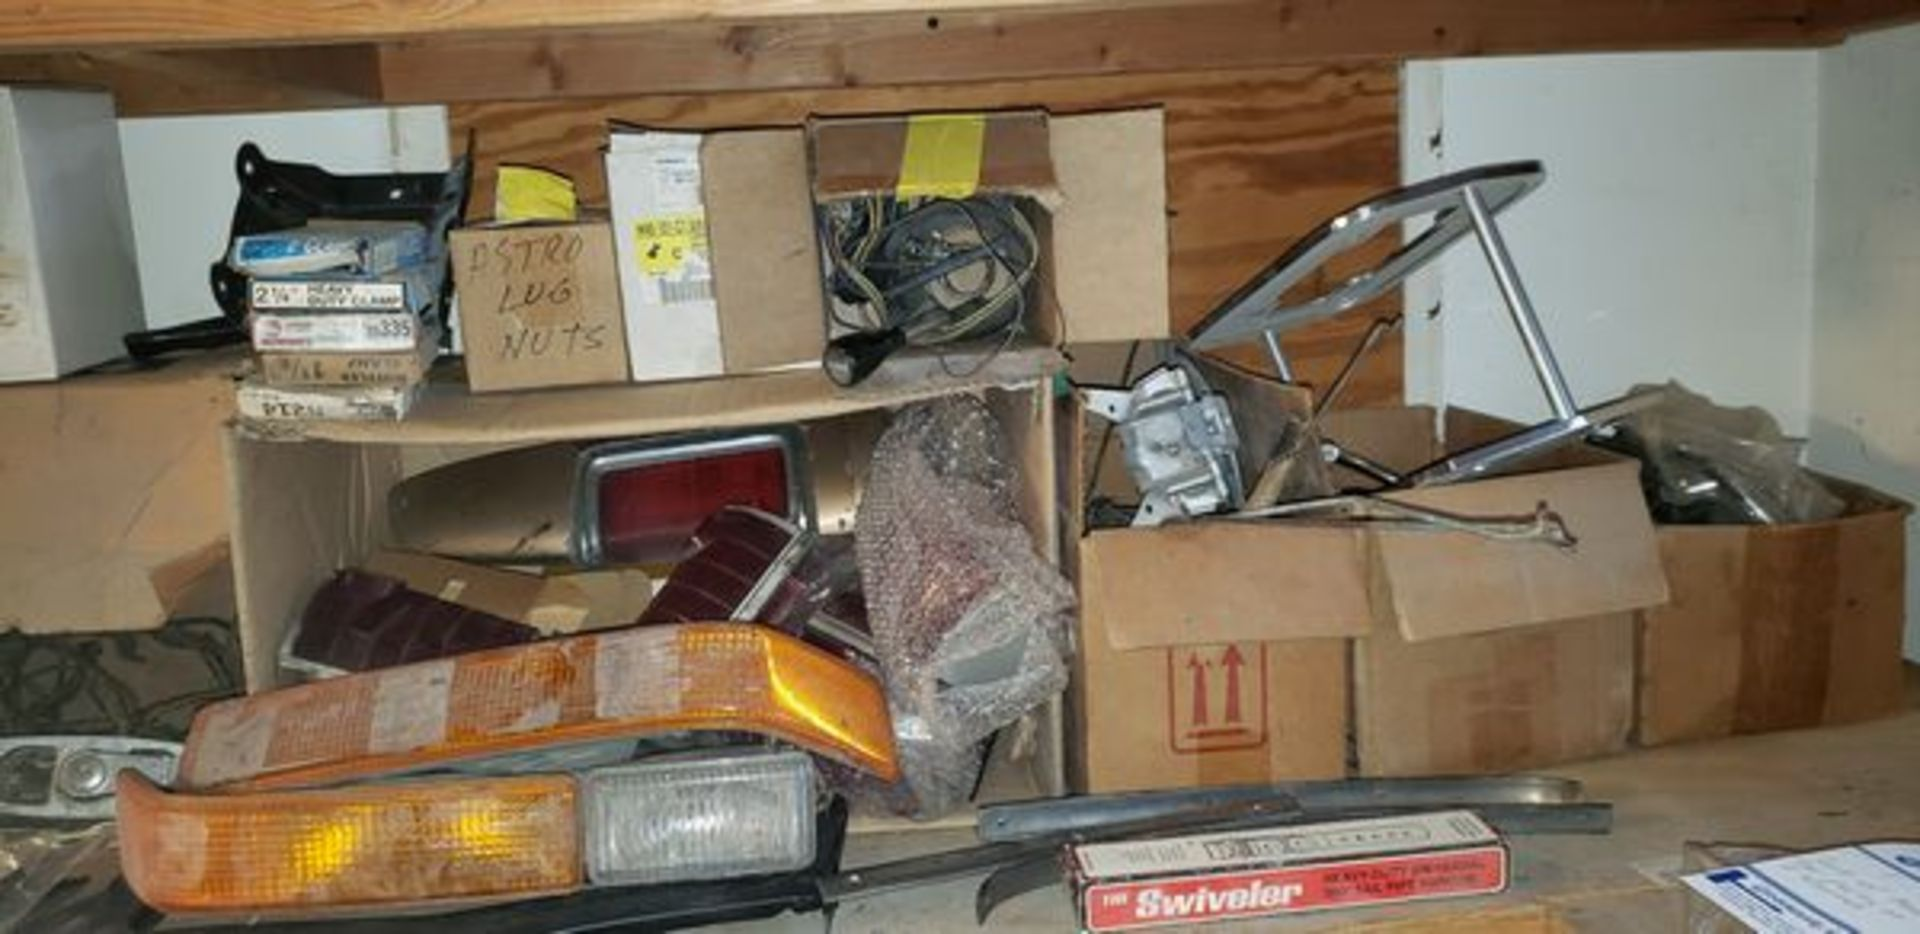 LOT OF ASSORTED CAR PARTS ON 3 SHELVES AND FLOOR - Image 4 of 12